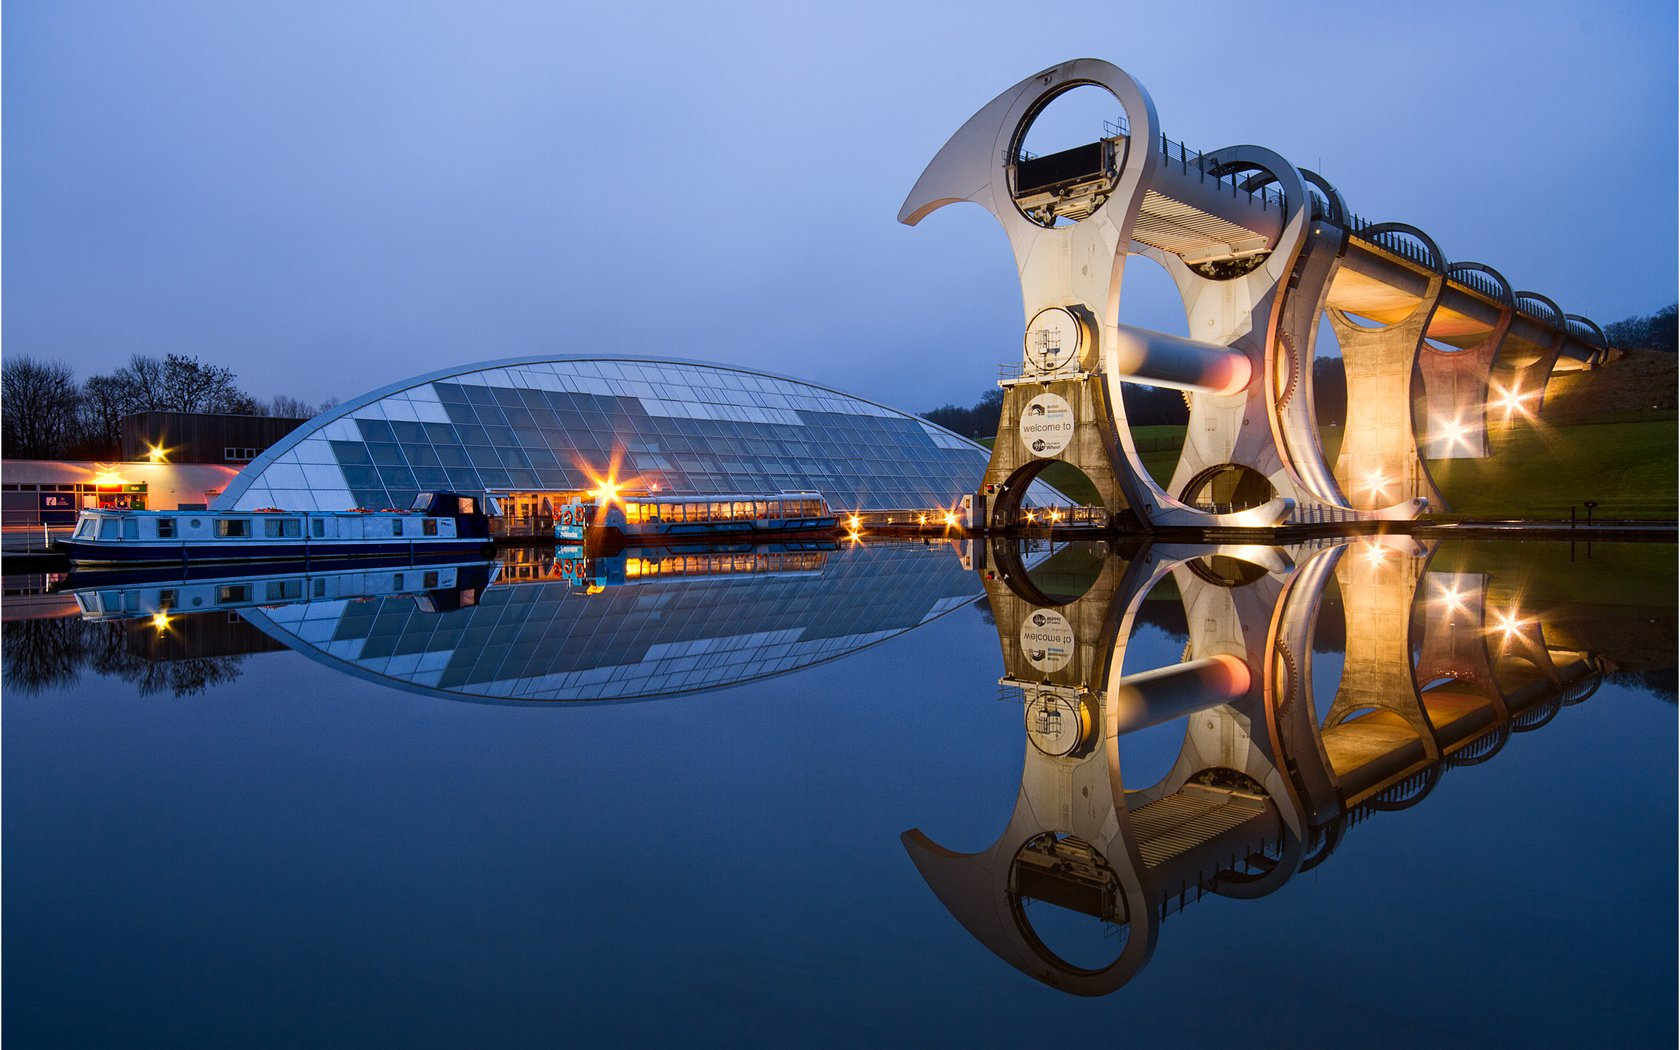 Обои отражение, шотландия, фолкеркское колесо, reflection, scotland, falkirk wheel разрешение 2500x1667 Загрузить